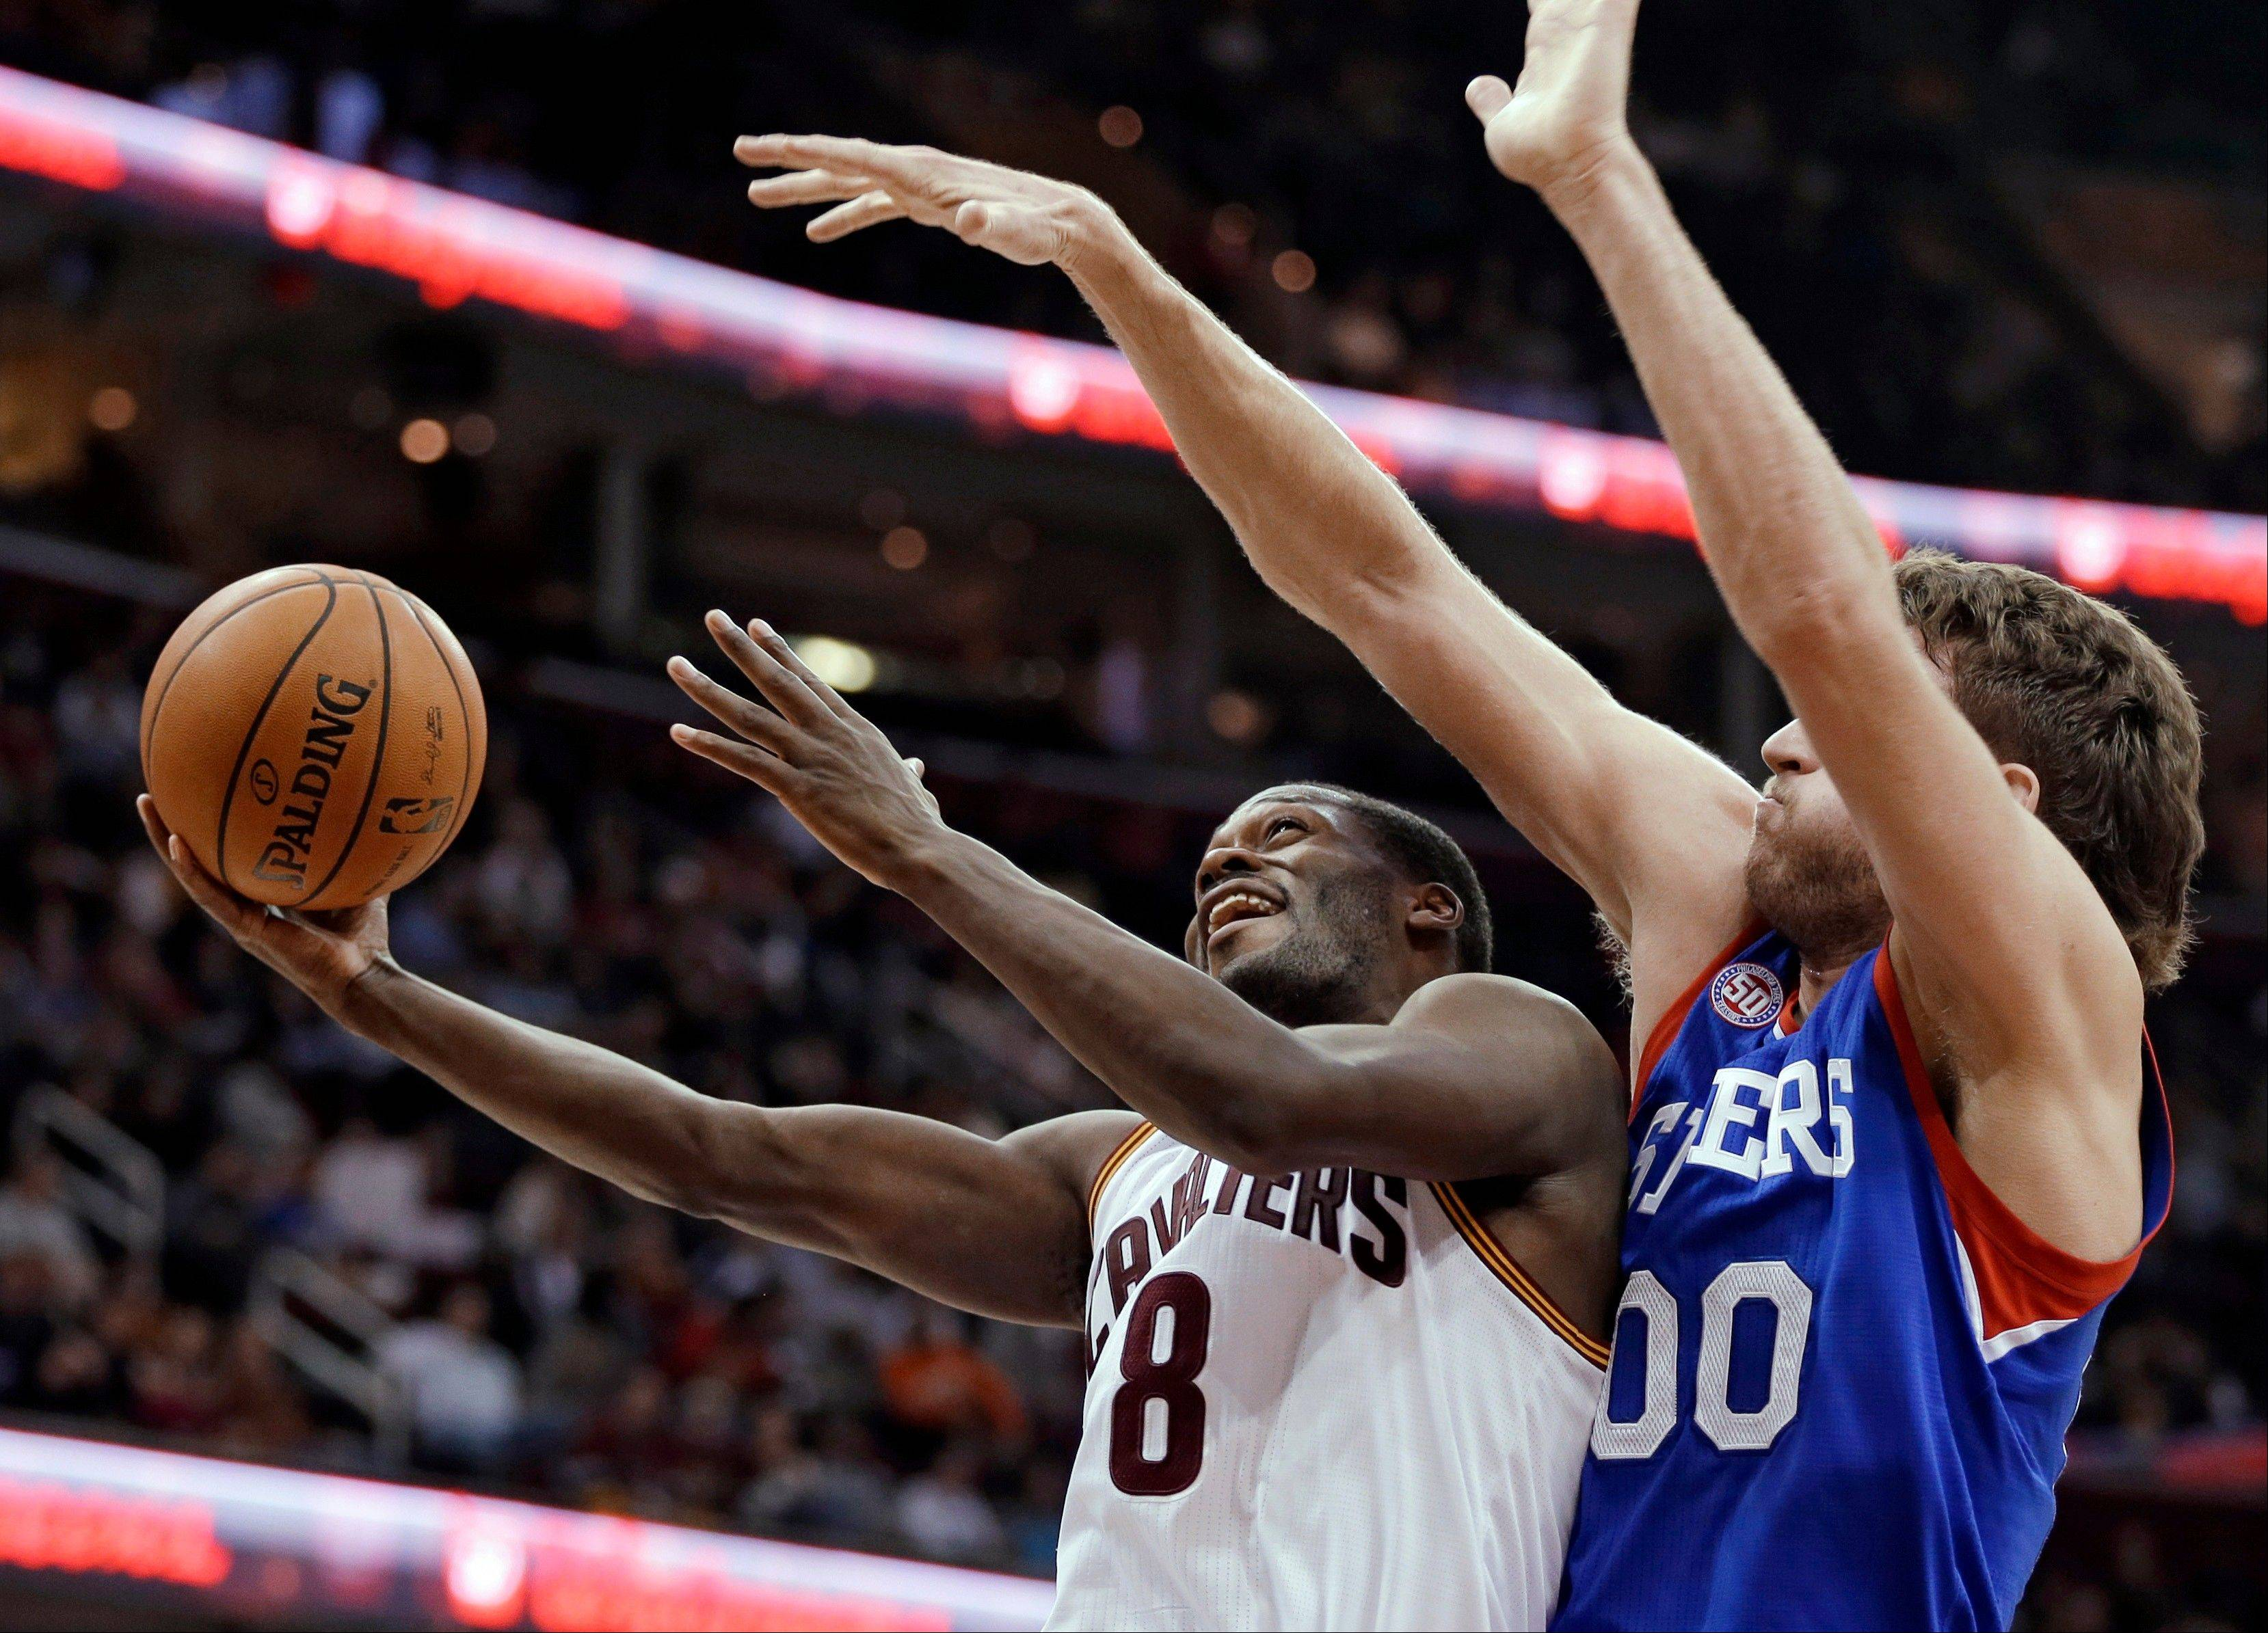 The Cavaliers' Jeremy Pargo shoots against Philadelphia's Spencer Hawes in the fourth quarter Wednesday in Cleveland.